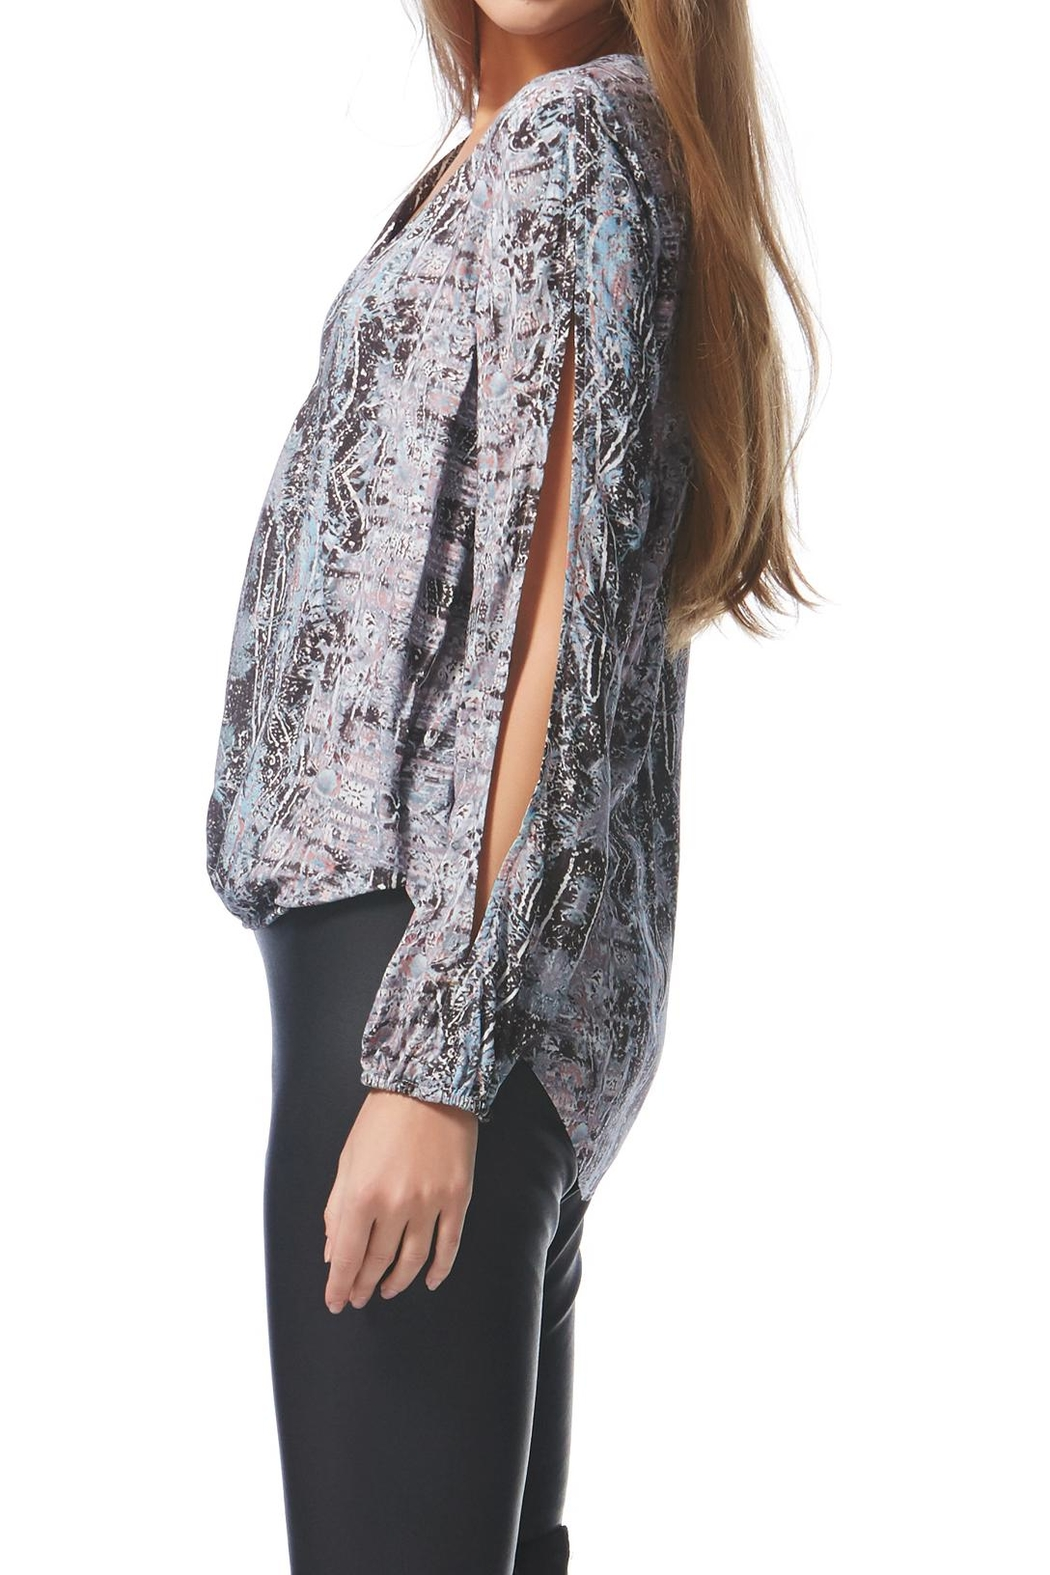 Tart Collections Date Night Top - Front Full Image